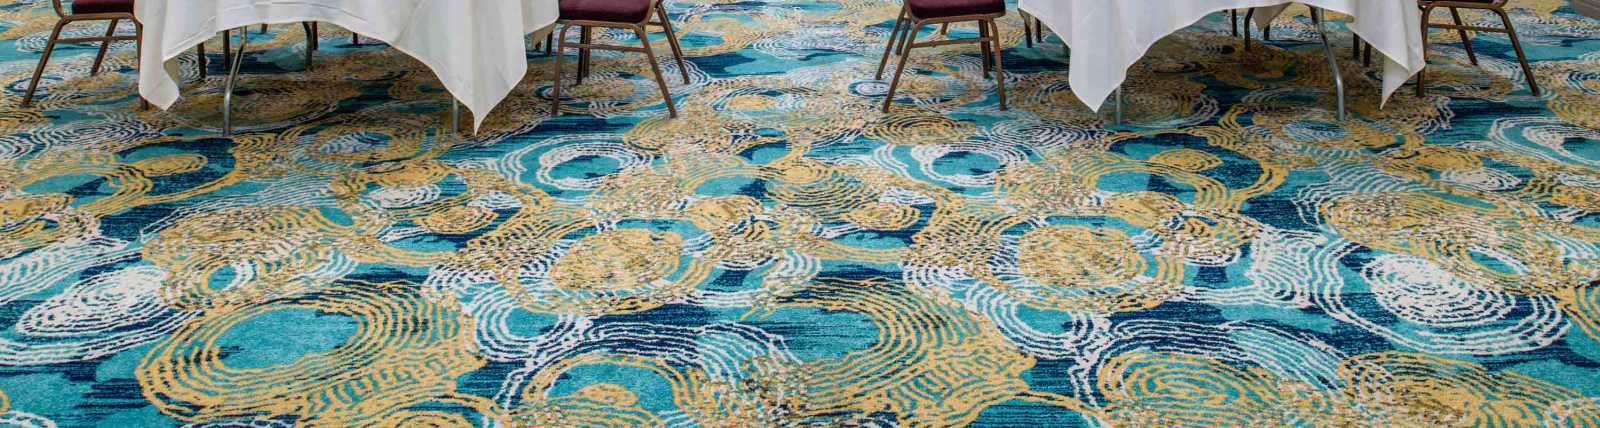 meeting-facility-Embassy_Suites_Seattle-Tacoma_International_Airport_Meeting_Facility-23.JPG